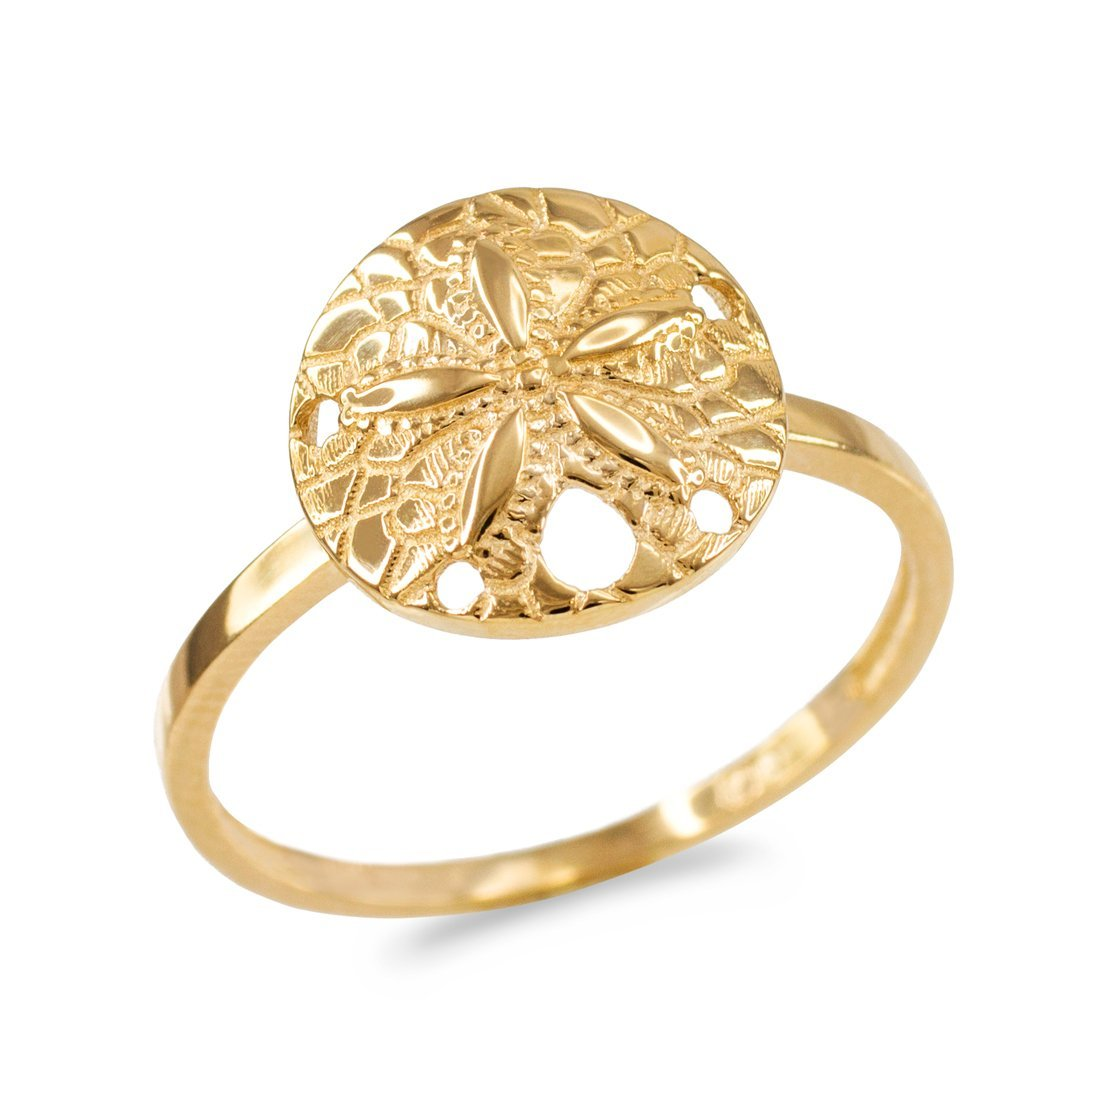 Dainty 14k Yellow Gold Sand Dollar Ladies Ring (Size 9.5)